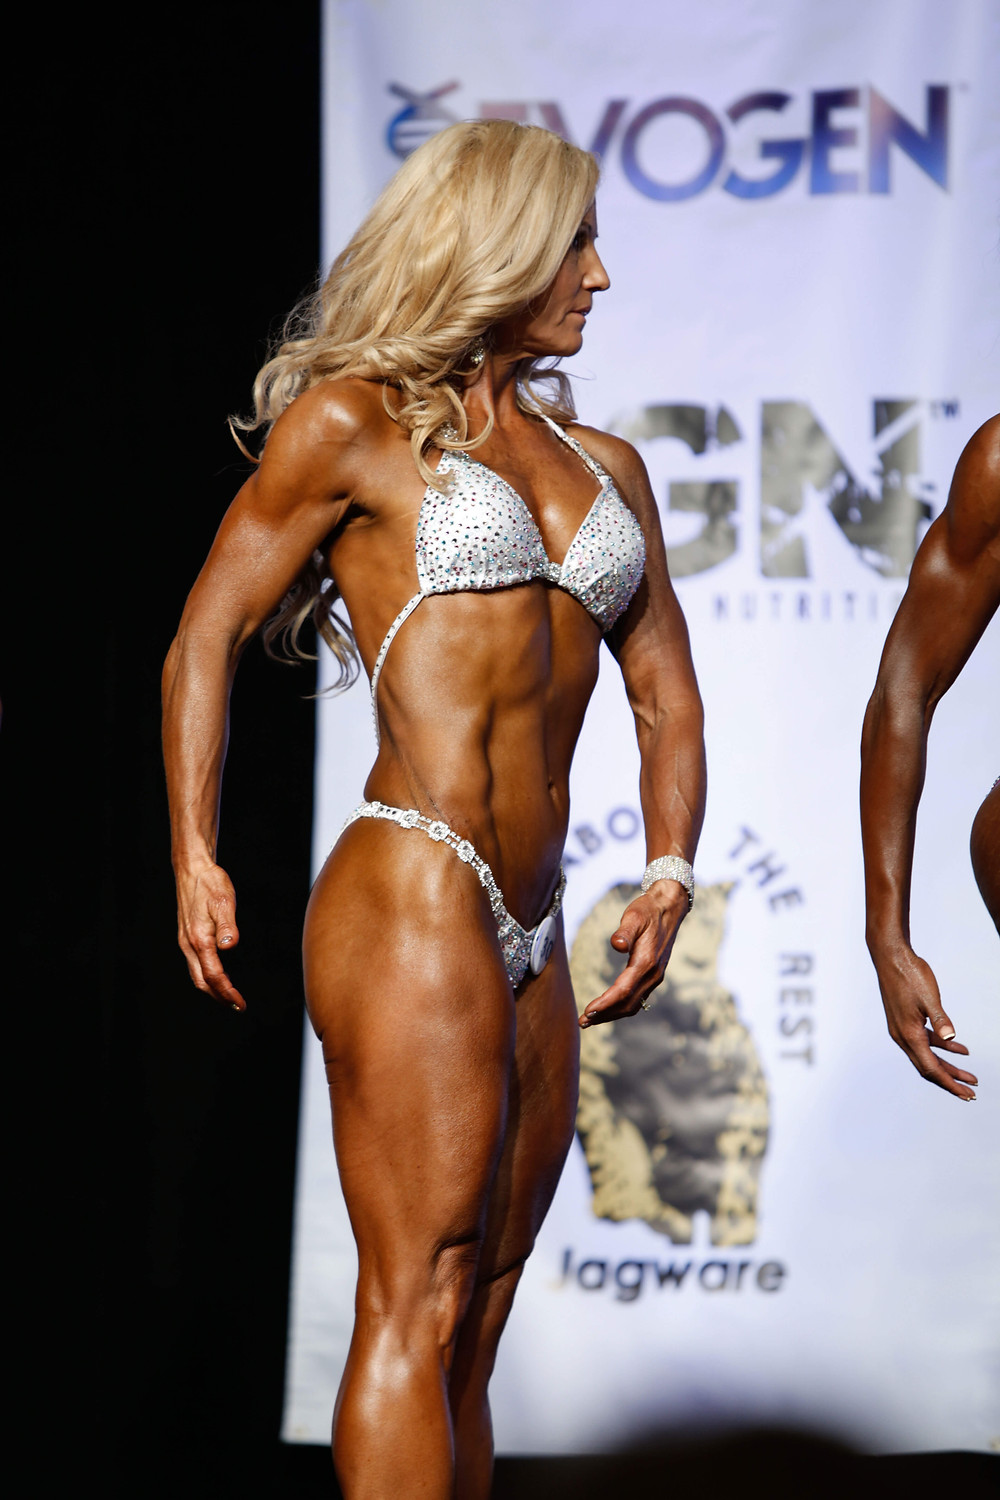 53 year old fitness competitor